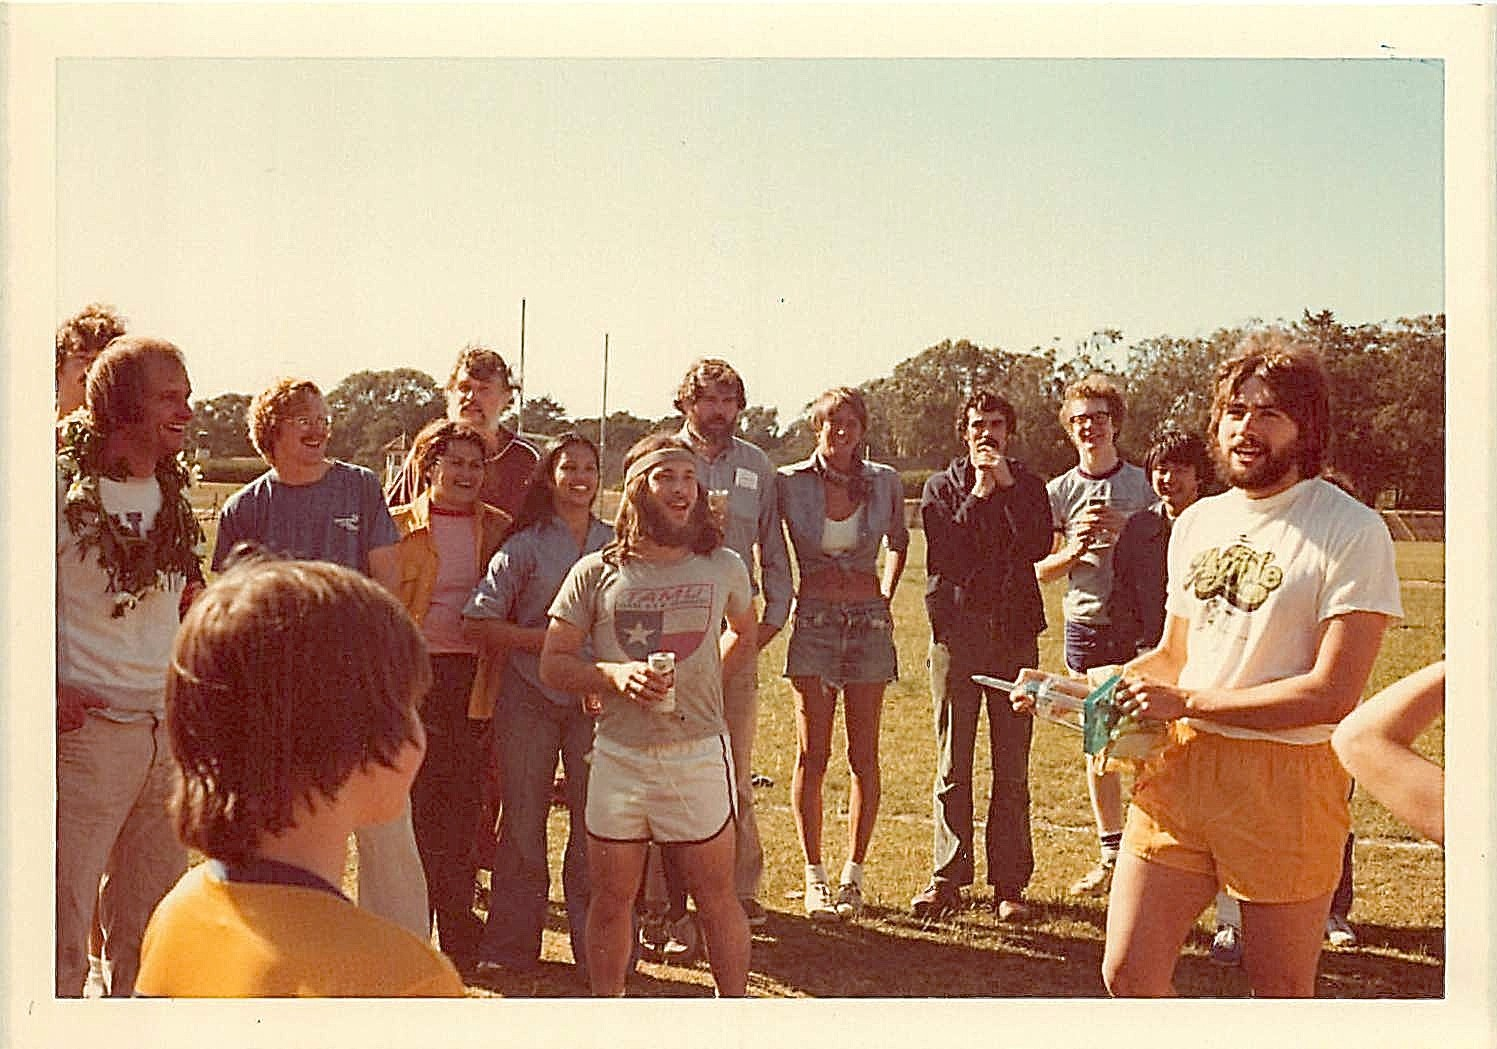 John giving the trophy to John Baxter's lab, which won the Great Race II